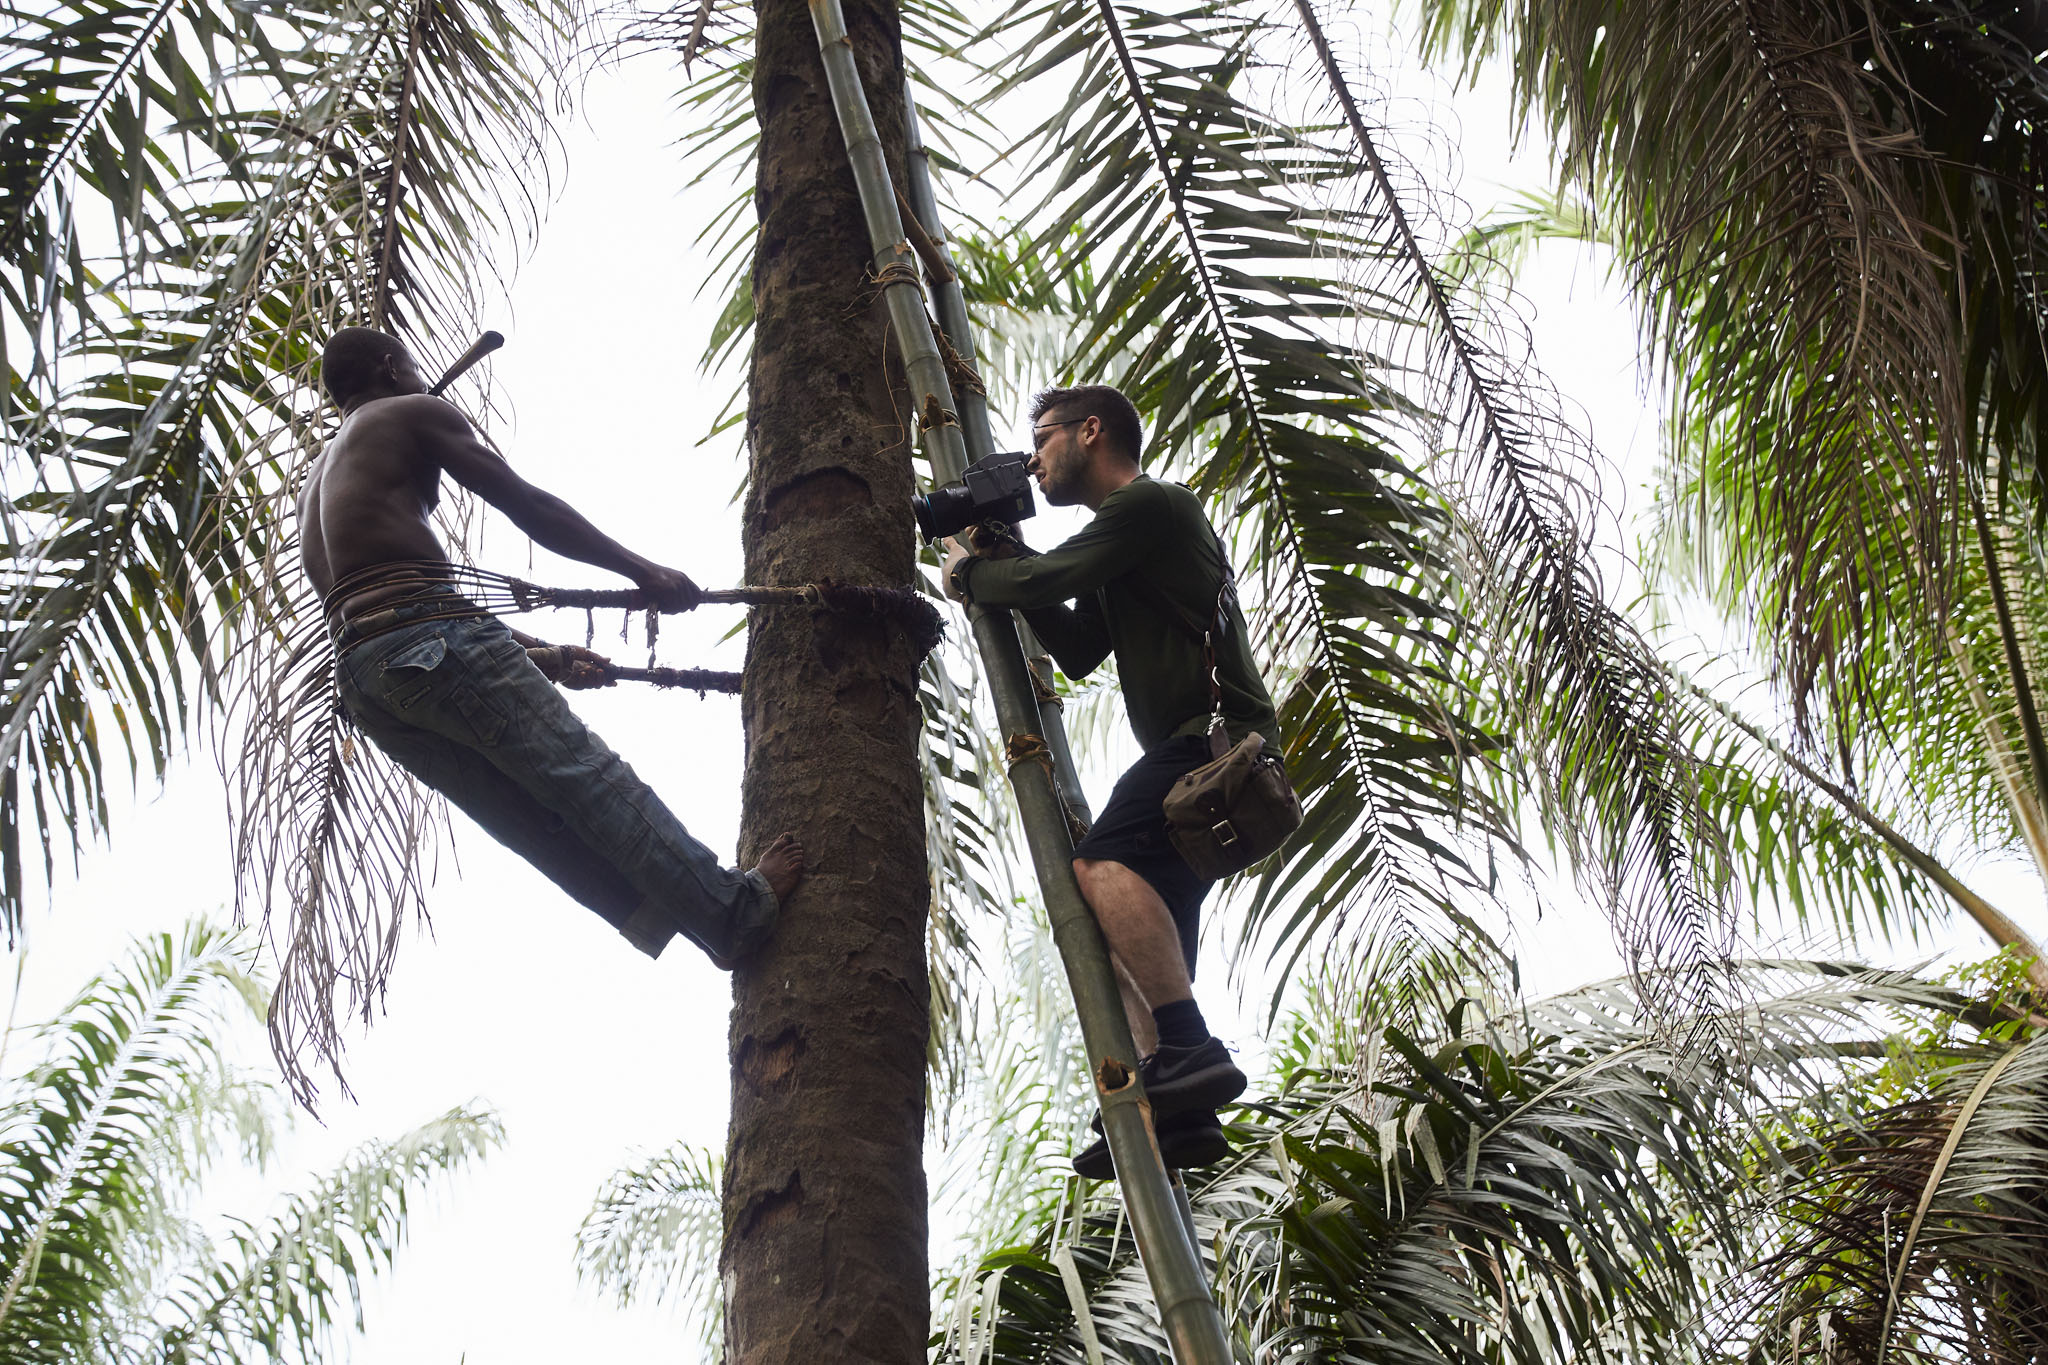 Joey Lawrence photographs Momoh Babaga, 22, as he climbs trees to collect palm kernels, Tombohuaun, Sierra Leone, May 2017.